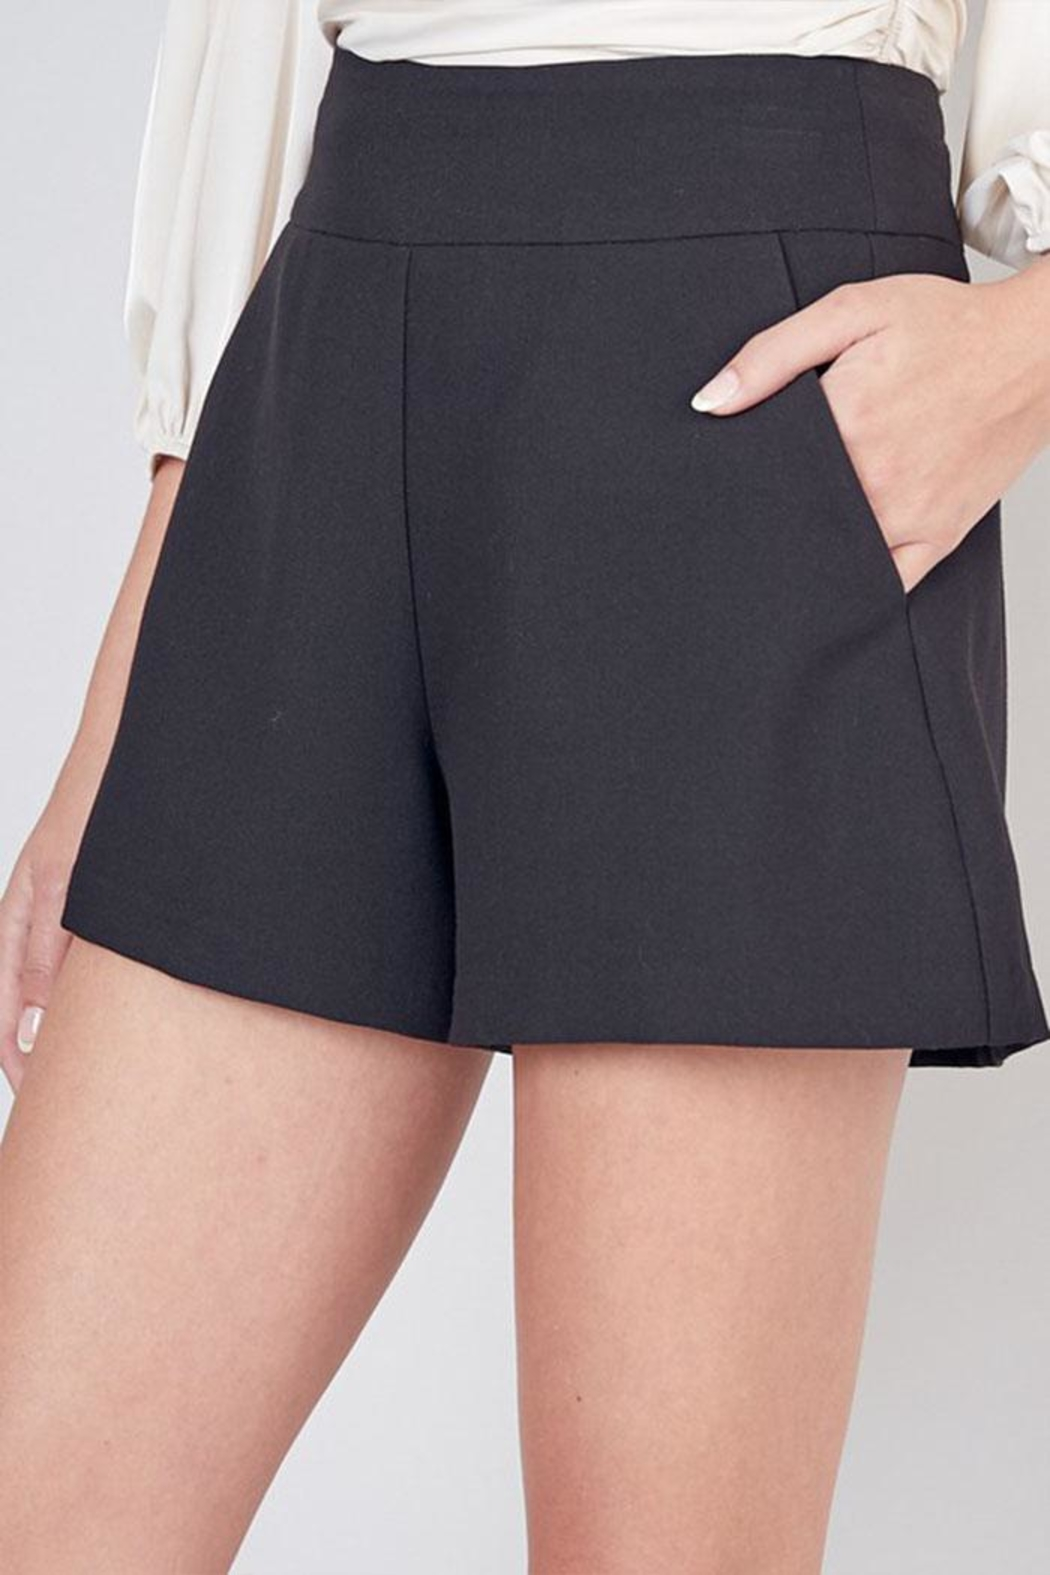 Do & Be High Waisted Shorts - Front Cropped Image